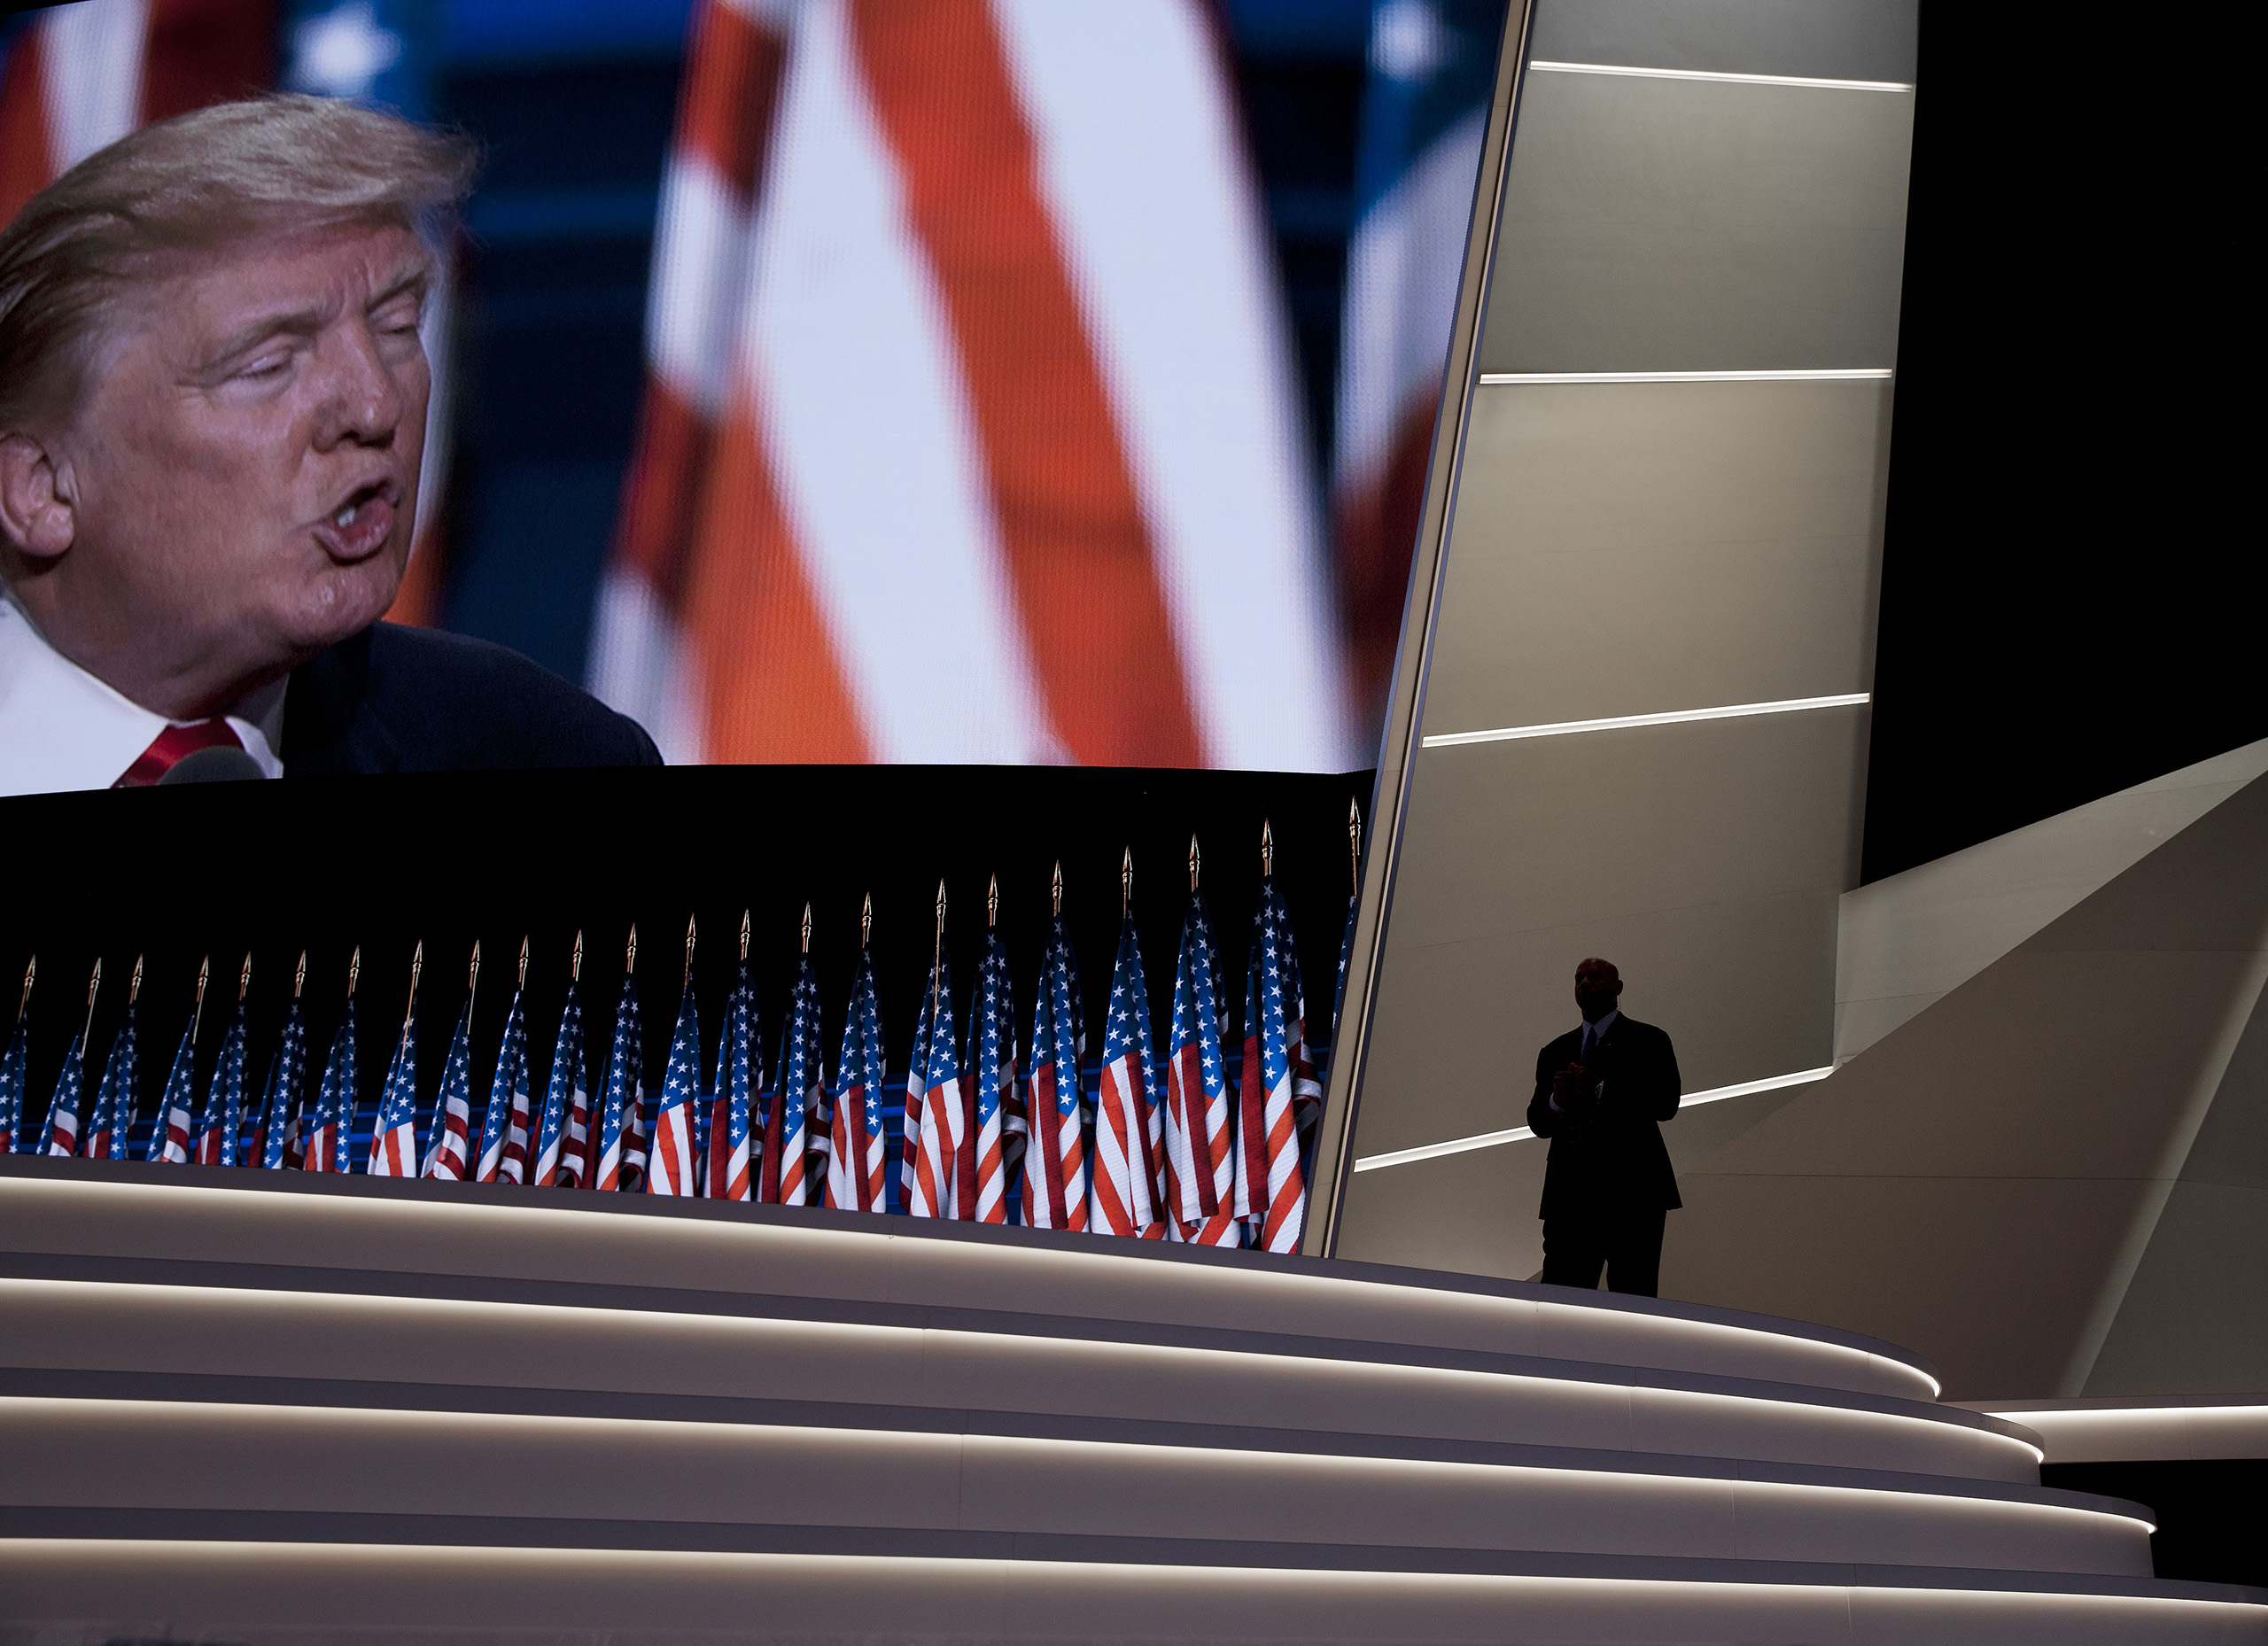 Republican presidential candidate Donald Trump delivers his speech at the Republican National Convention on July 21, 2016 at the Quicken Loans Arena in Cleveland.